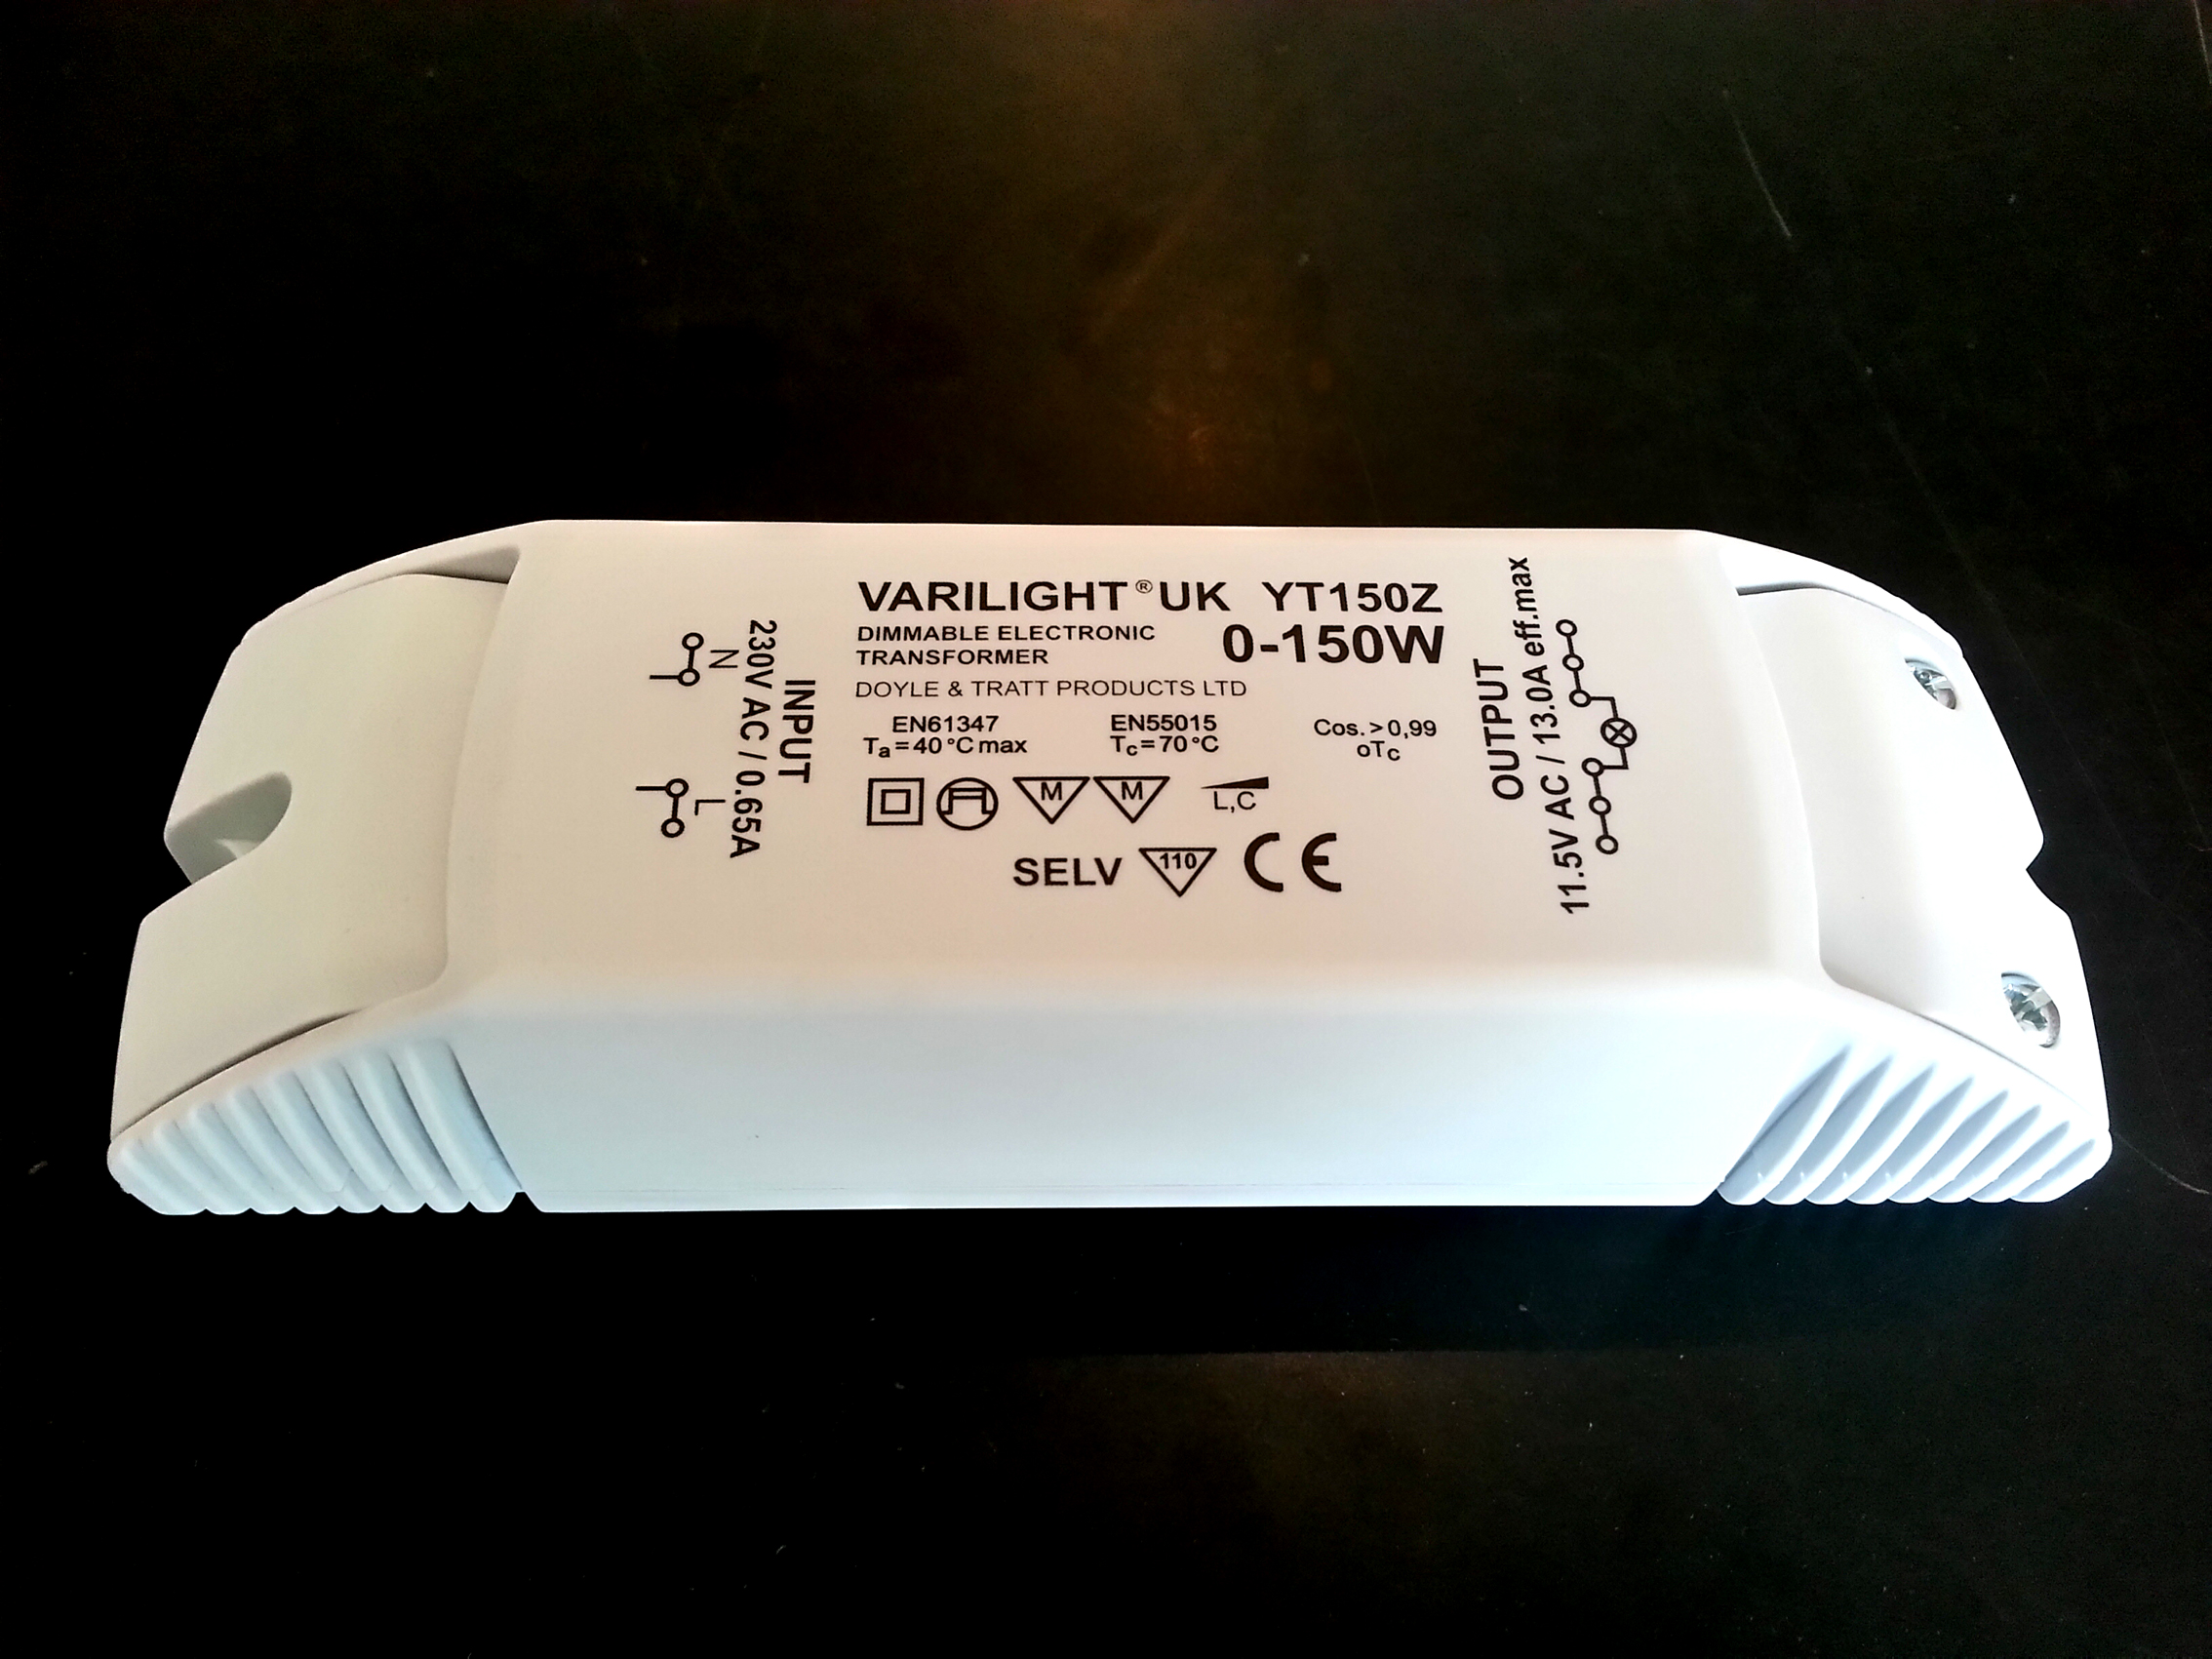 YT150Z, Varilight 150 watt transformer for low voltage circuits